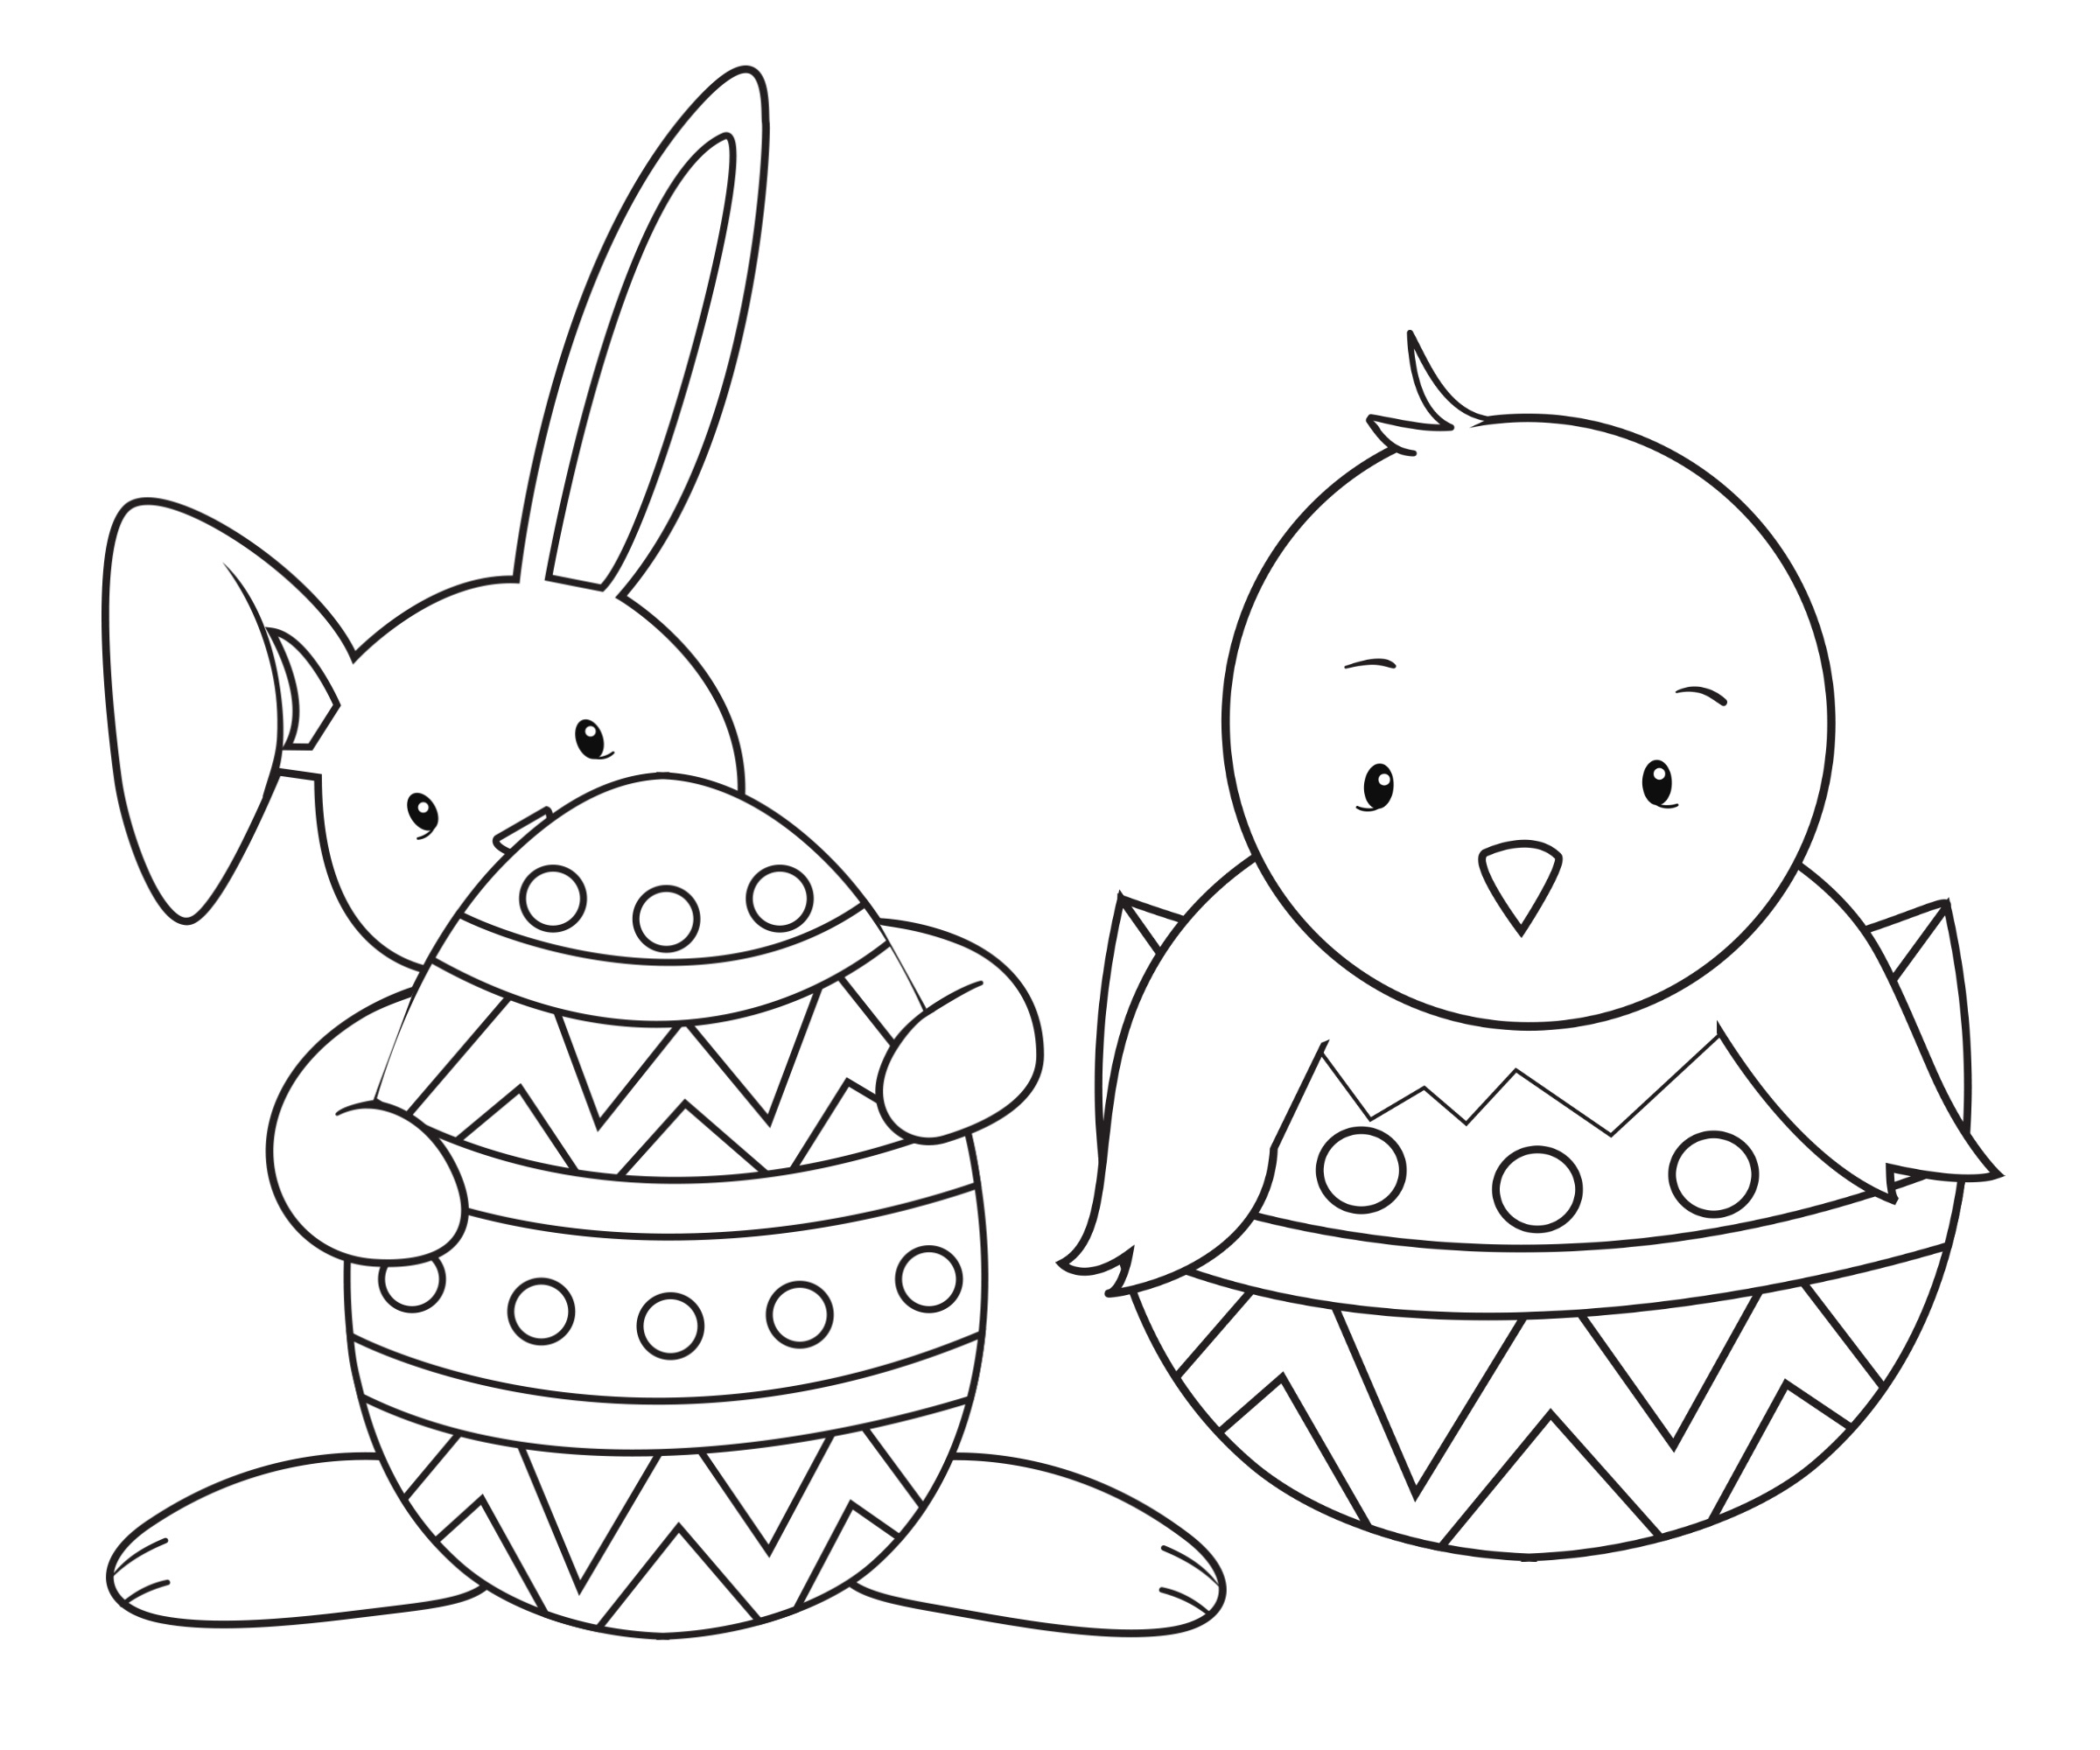 Easter Coloring Pages For Kids - Crazy Little Projects - Free Printable Easter Coloring Pictures